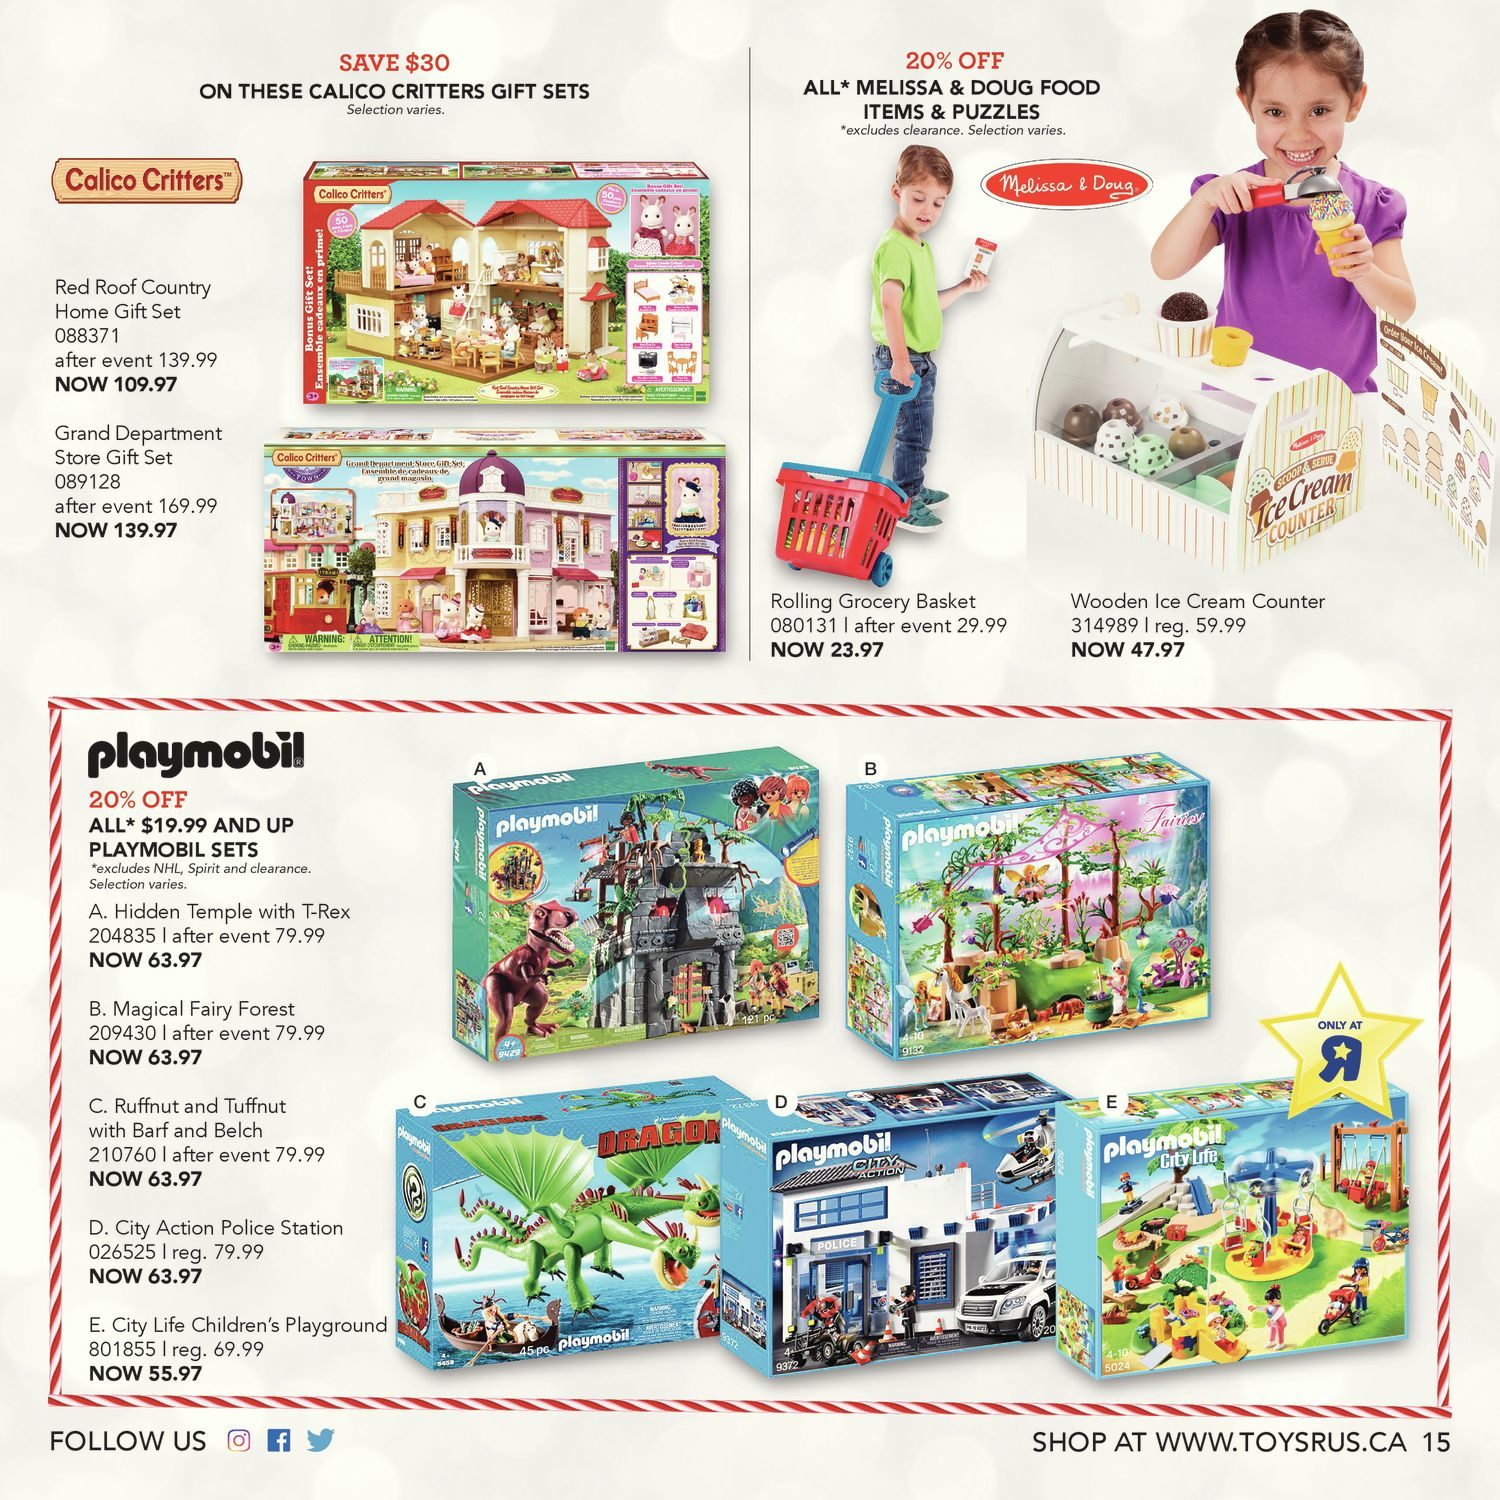 Toys R Us Weekly Flyer - Ultimate Toy Guide 2018 - Nov 2 – 15